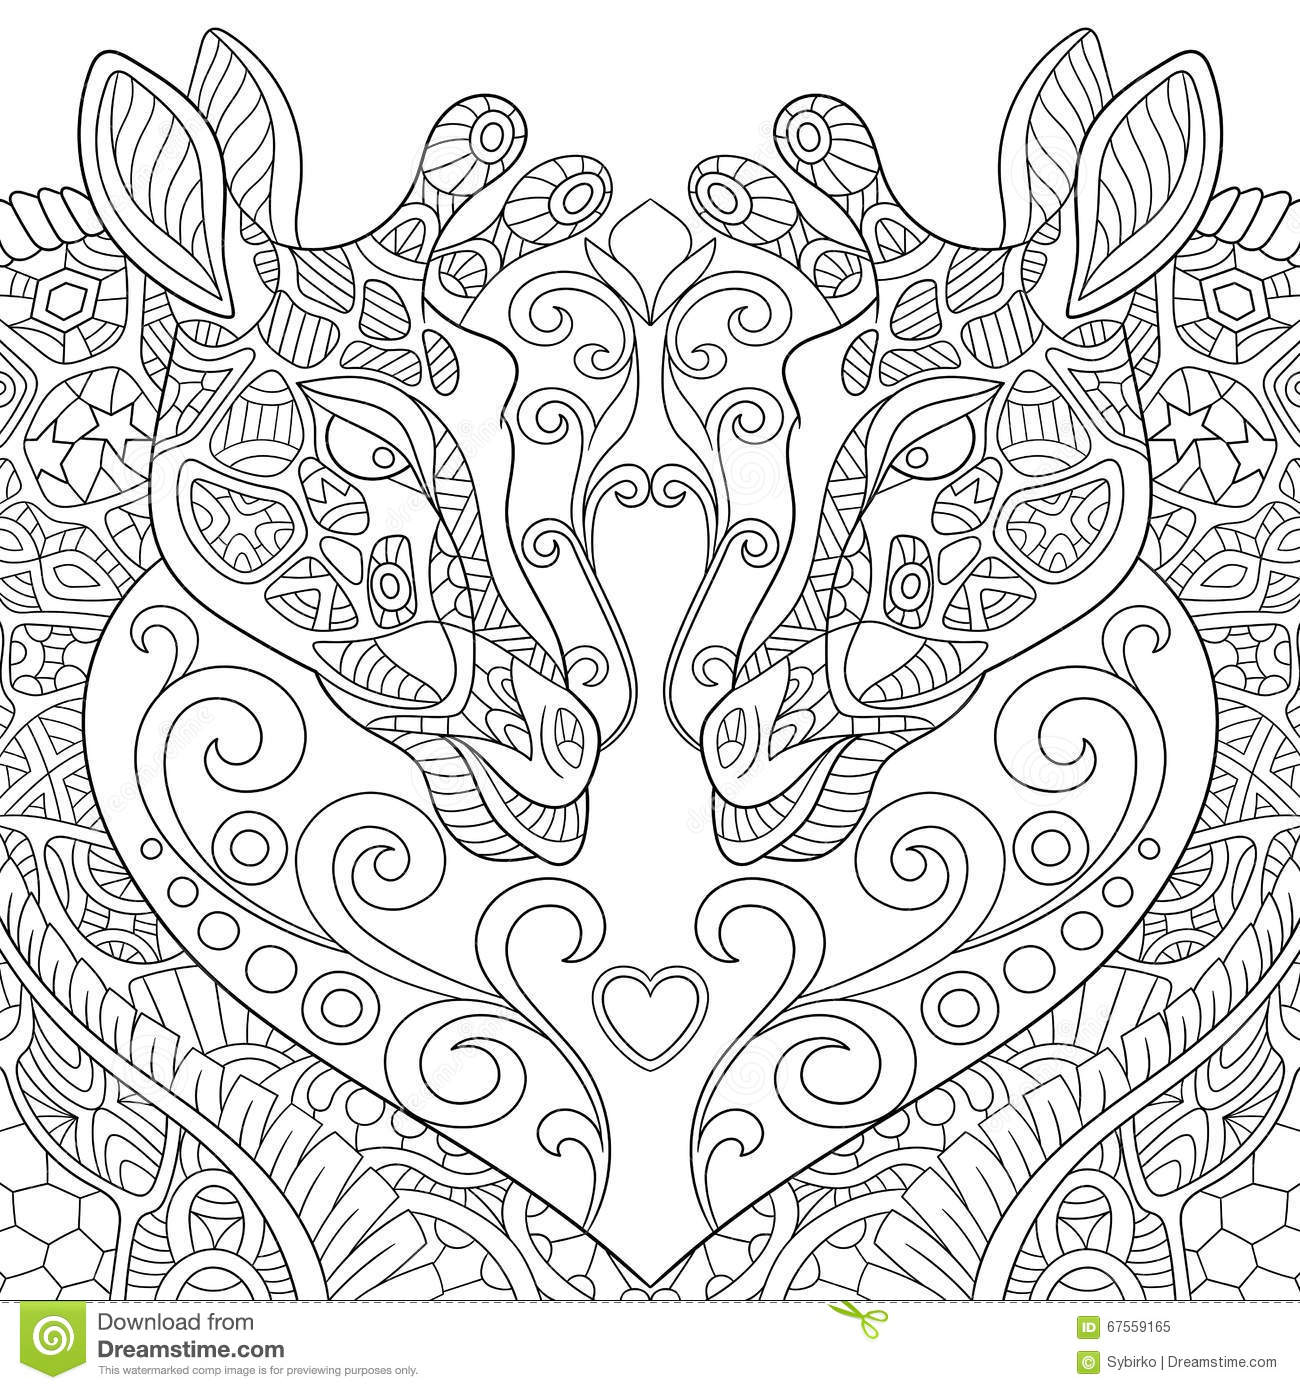 Coloring pages for adults giraffe - Royalty Free Vector